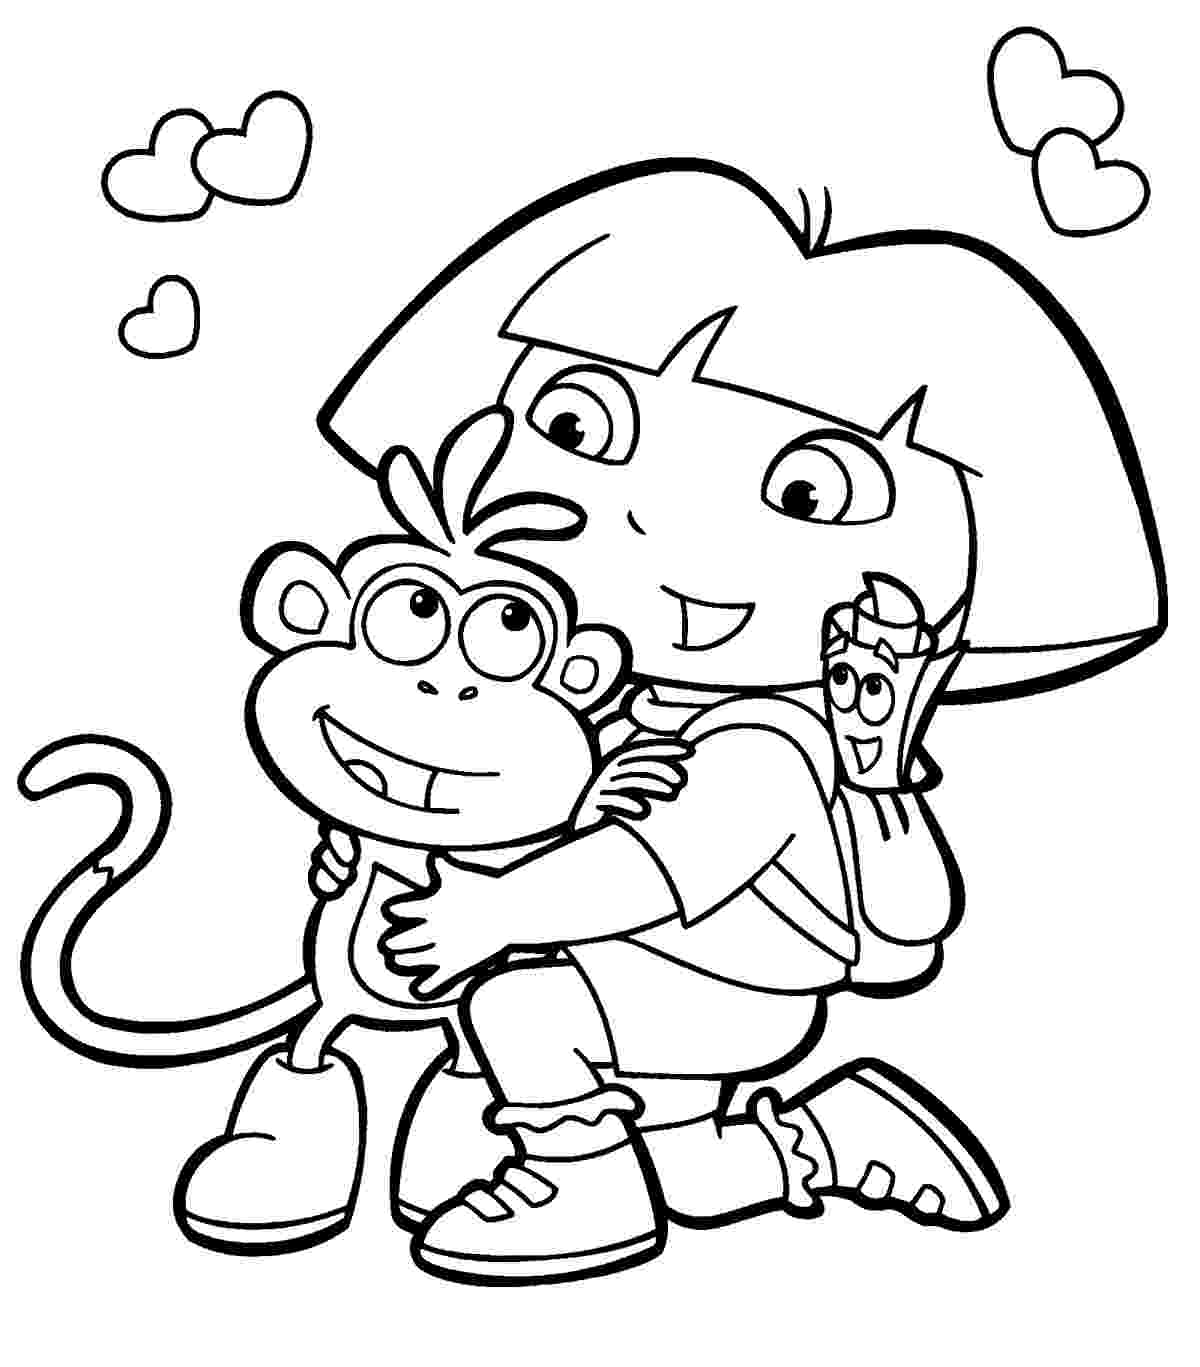 dora colouring dora coloring pages free printables momjunction dora colouring